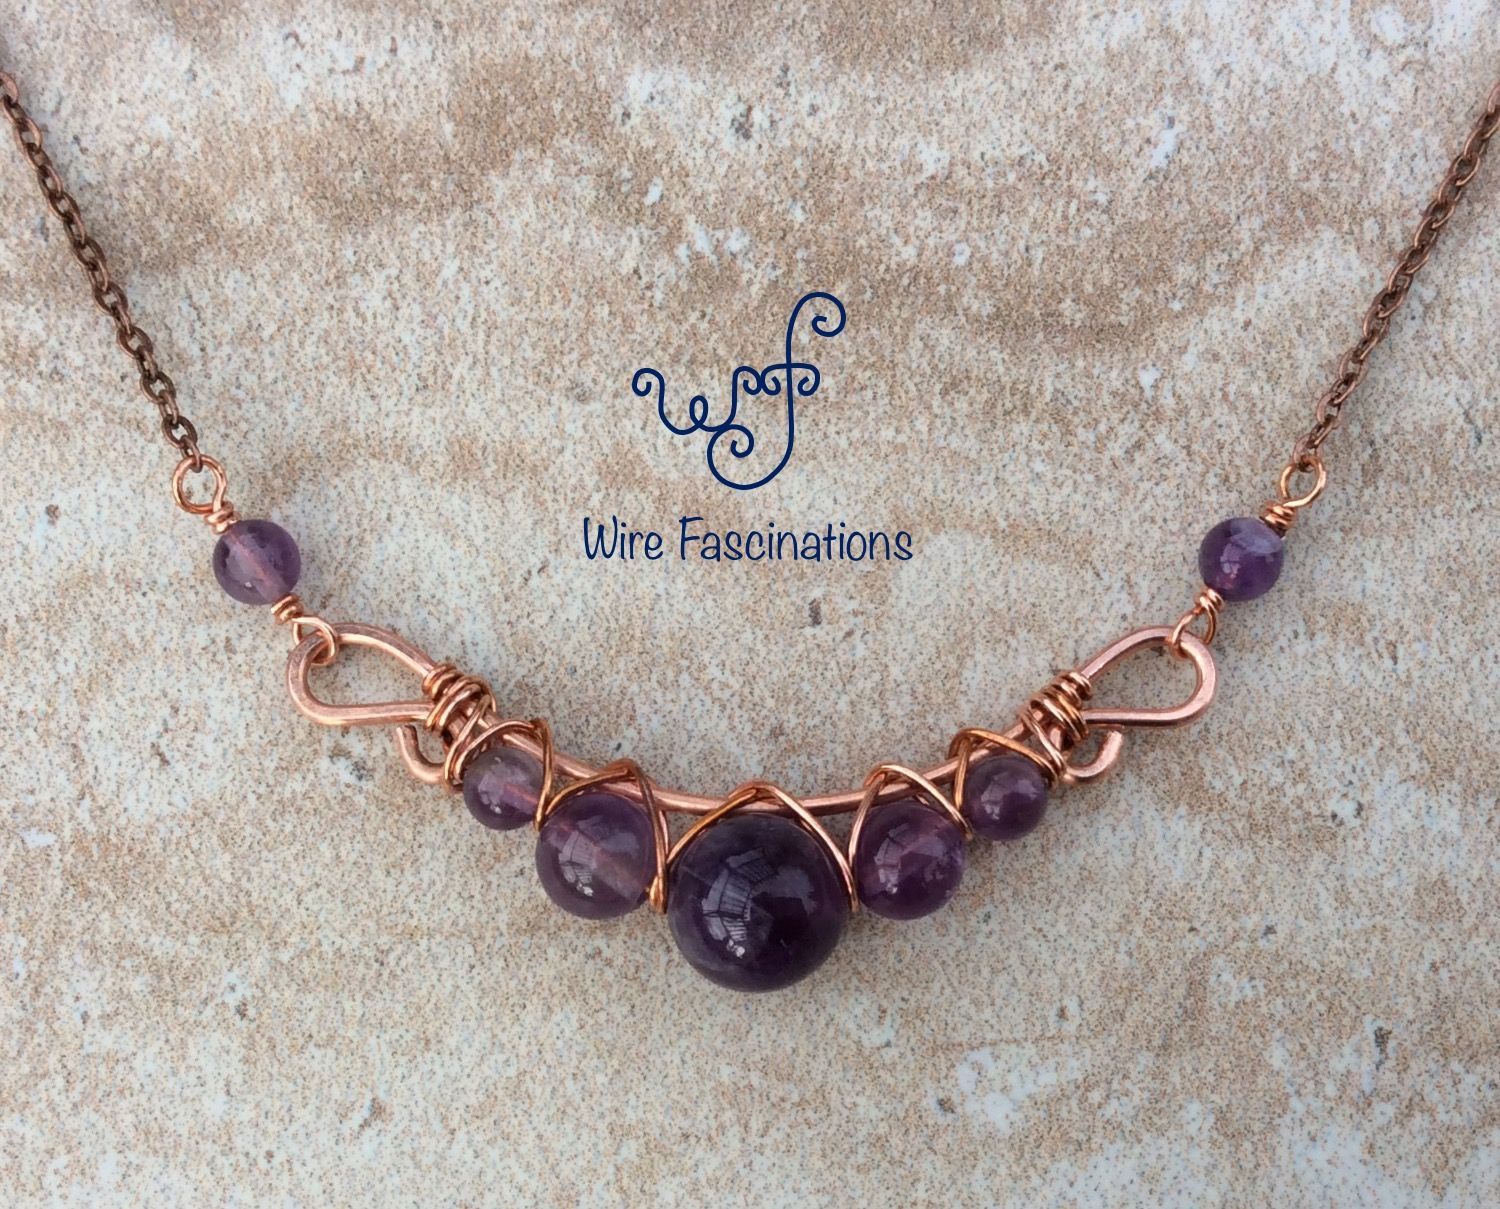 Photo of Handmade amethyst necklace: criss cross copper wire wrapped